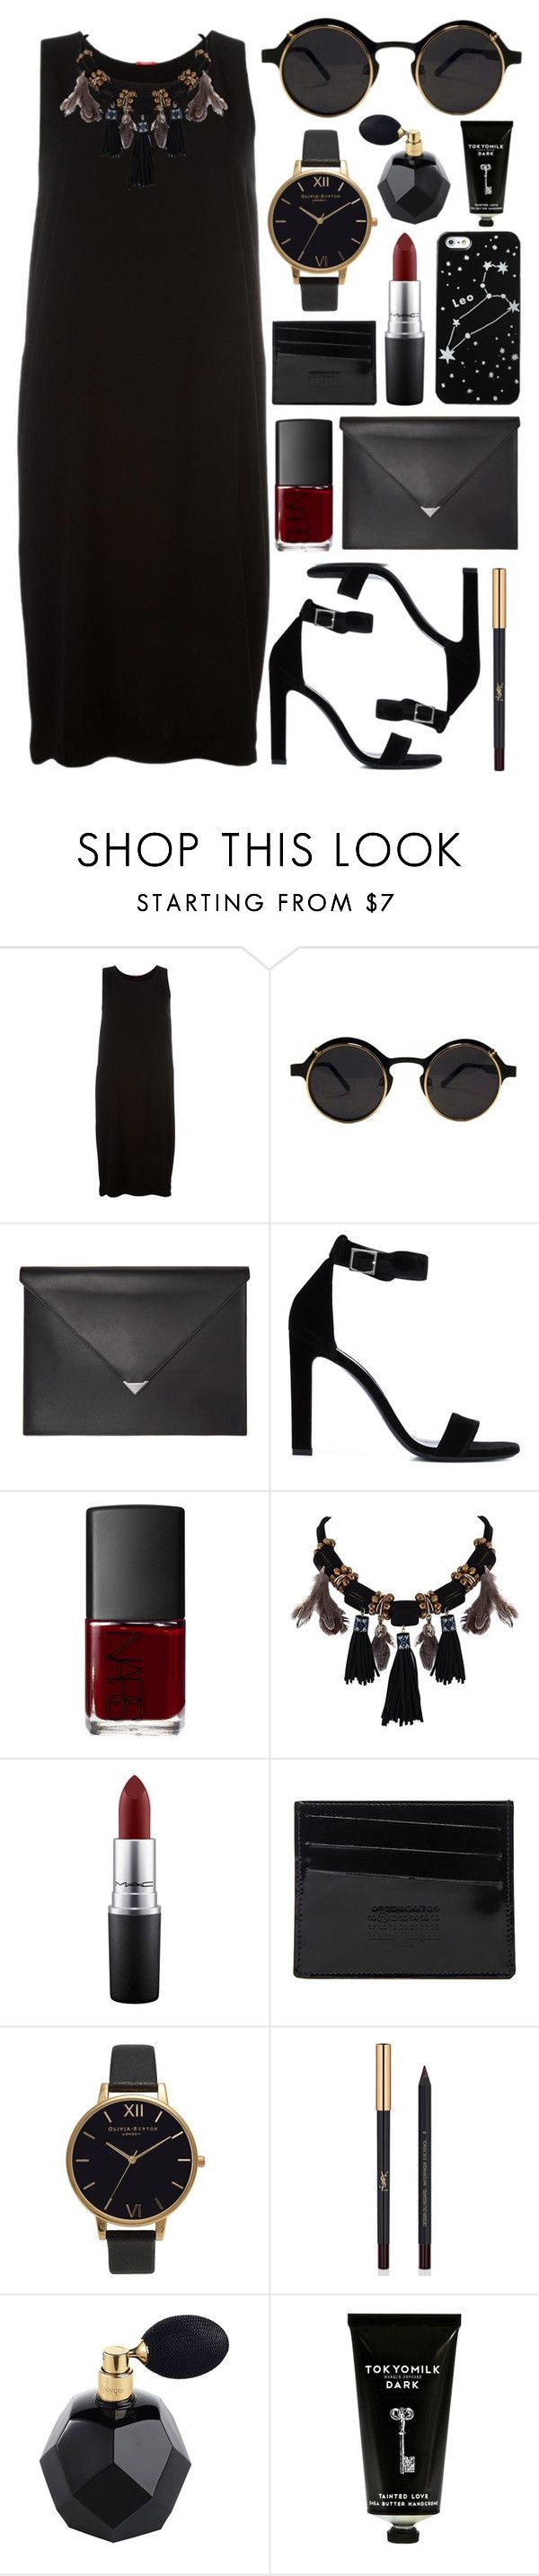 """""""Untitled #548"""" by clary94 ❤ liked on Polyvore featuring A.B, Alexander Wang, Yves Saint Laurent, NARS Cosmetics, Kate Spade Saturday, MAC Cosmetics, Maison Margiela, Olivia Burton and TokyoMilk"""